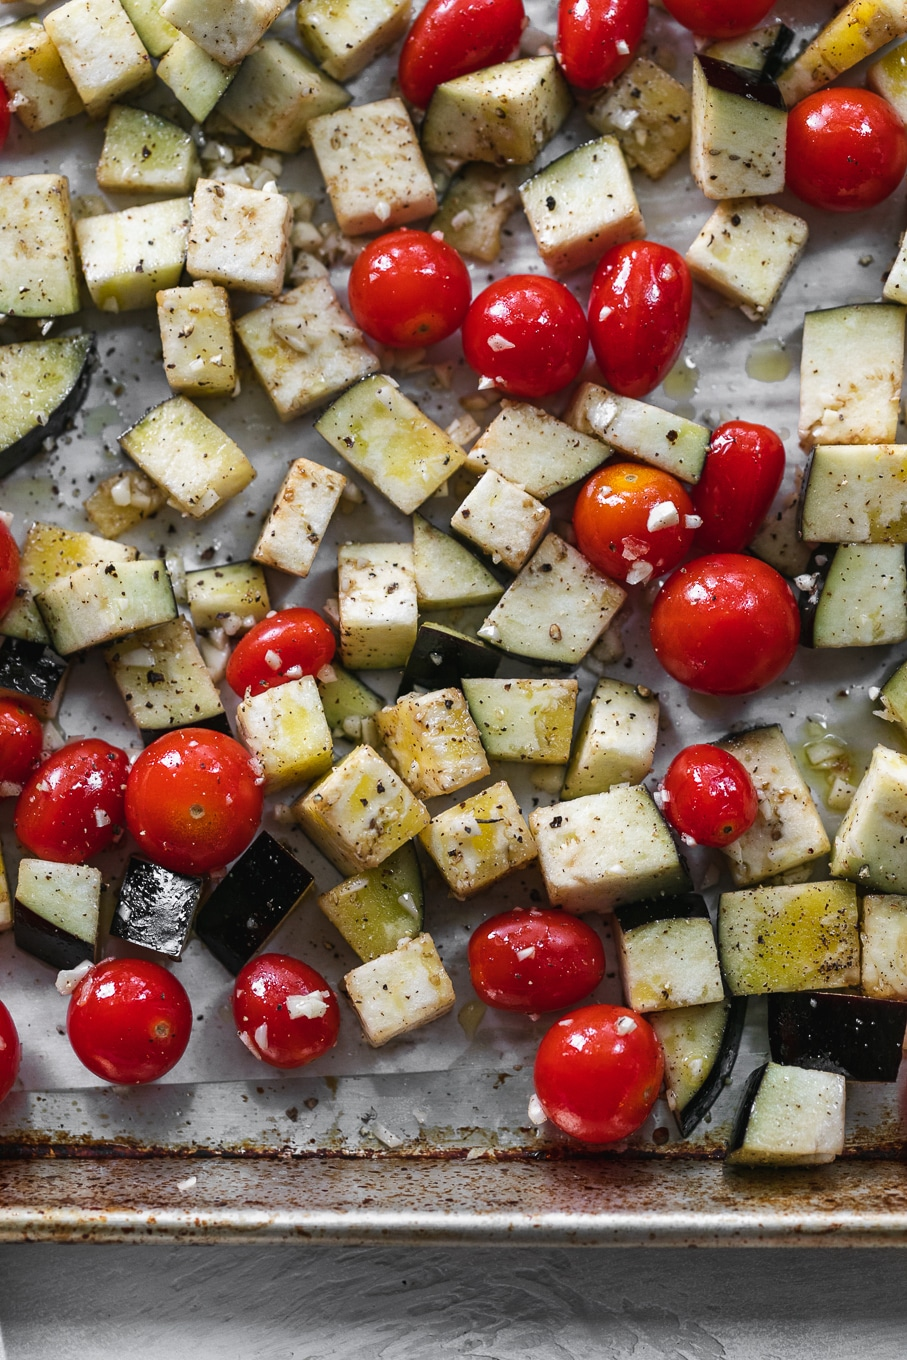 Overhead close up shot of a sheet pan filled with tomatoes and eggplant